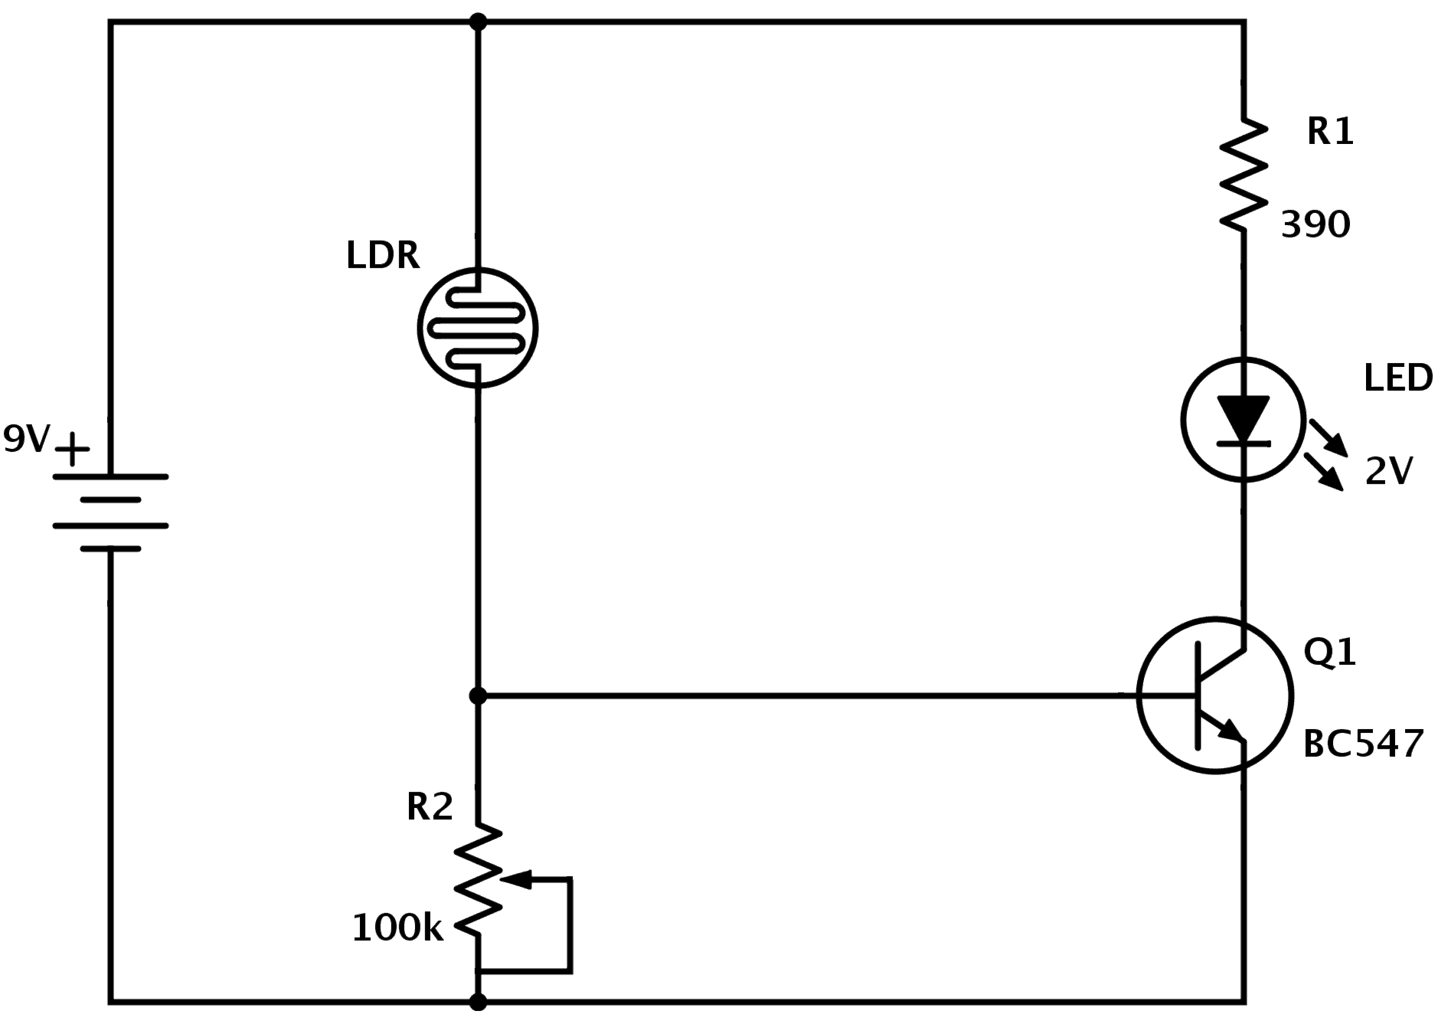 LDR circuit improved circuit diagram how to read and understand any schematic circuit diagram pdf at aneh.co